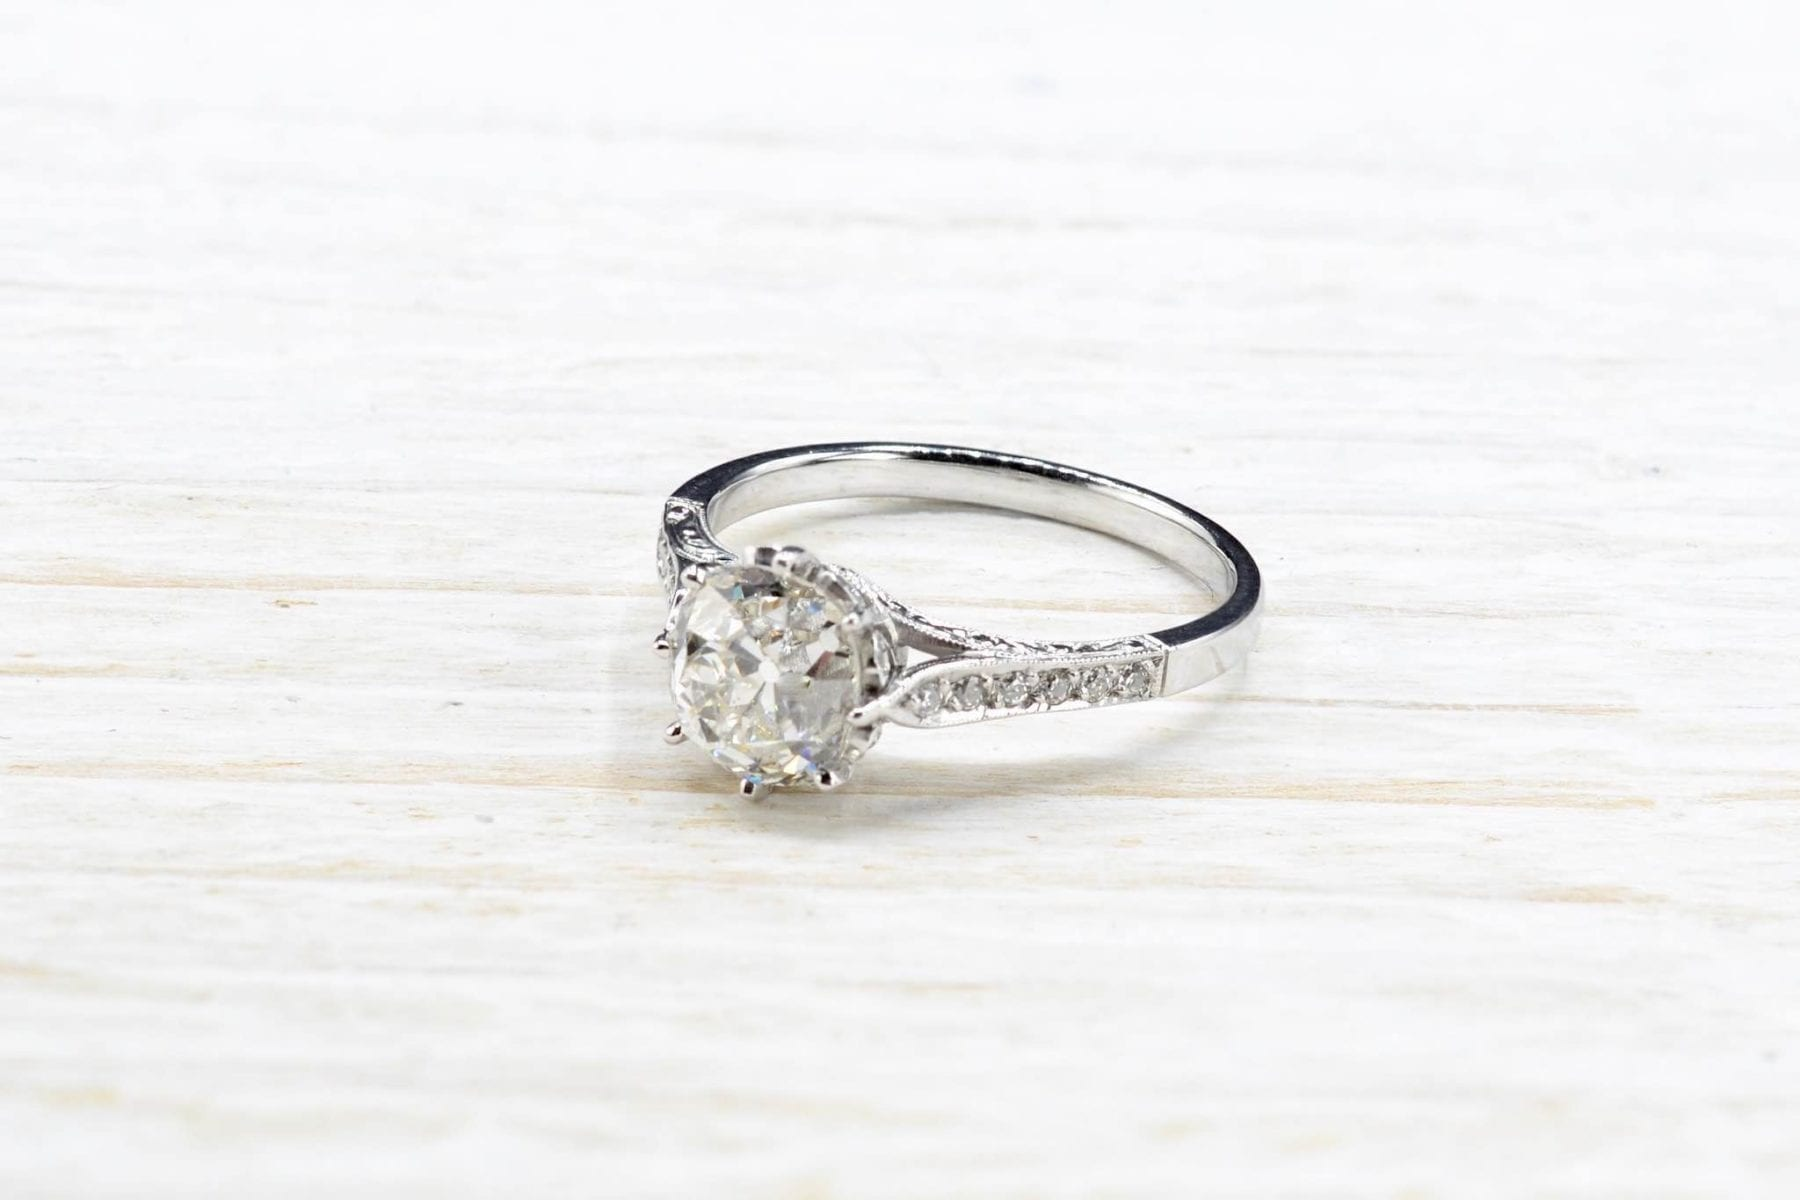 Antique diamond solitaire